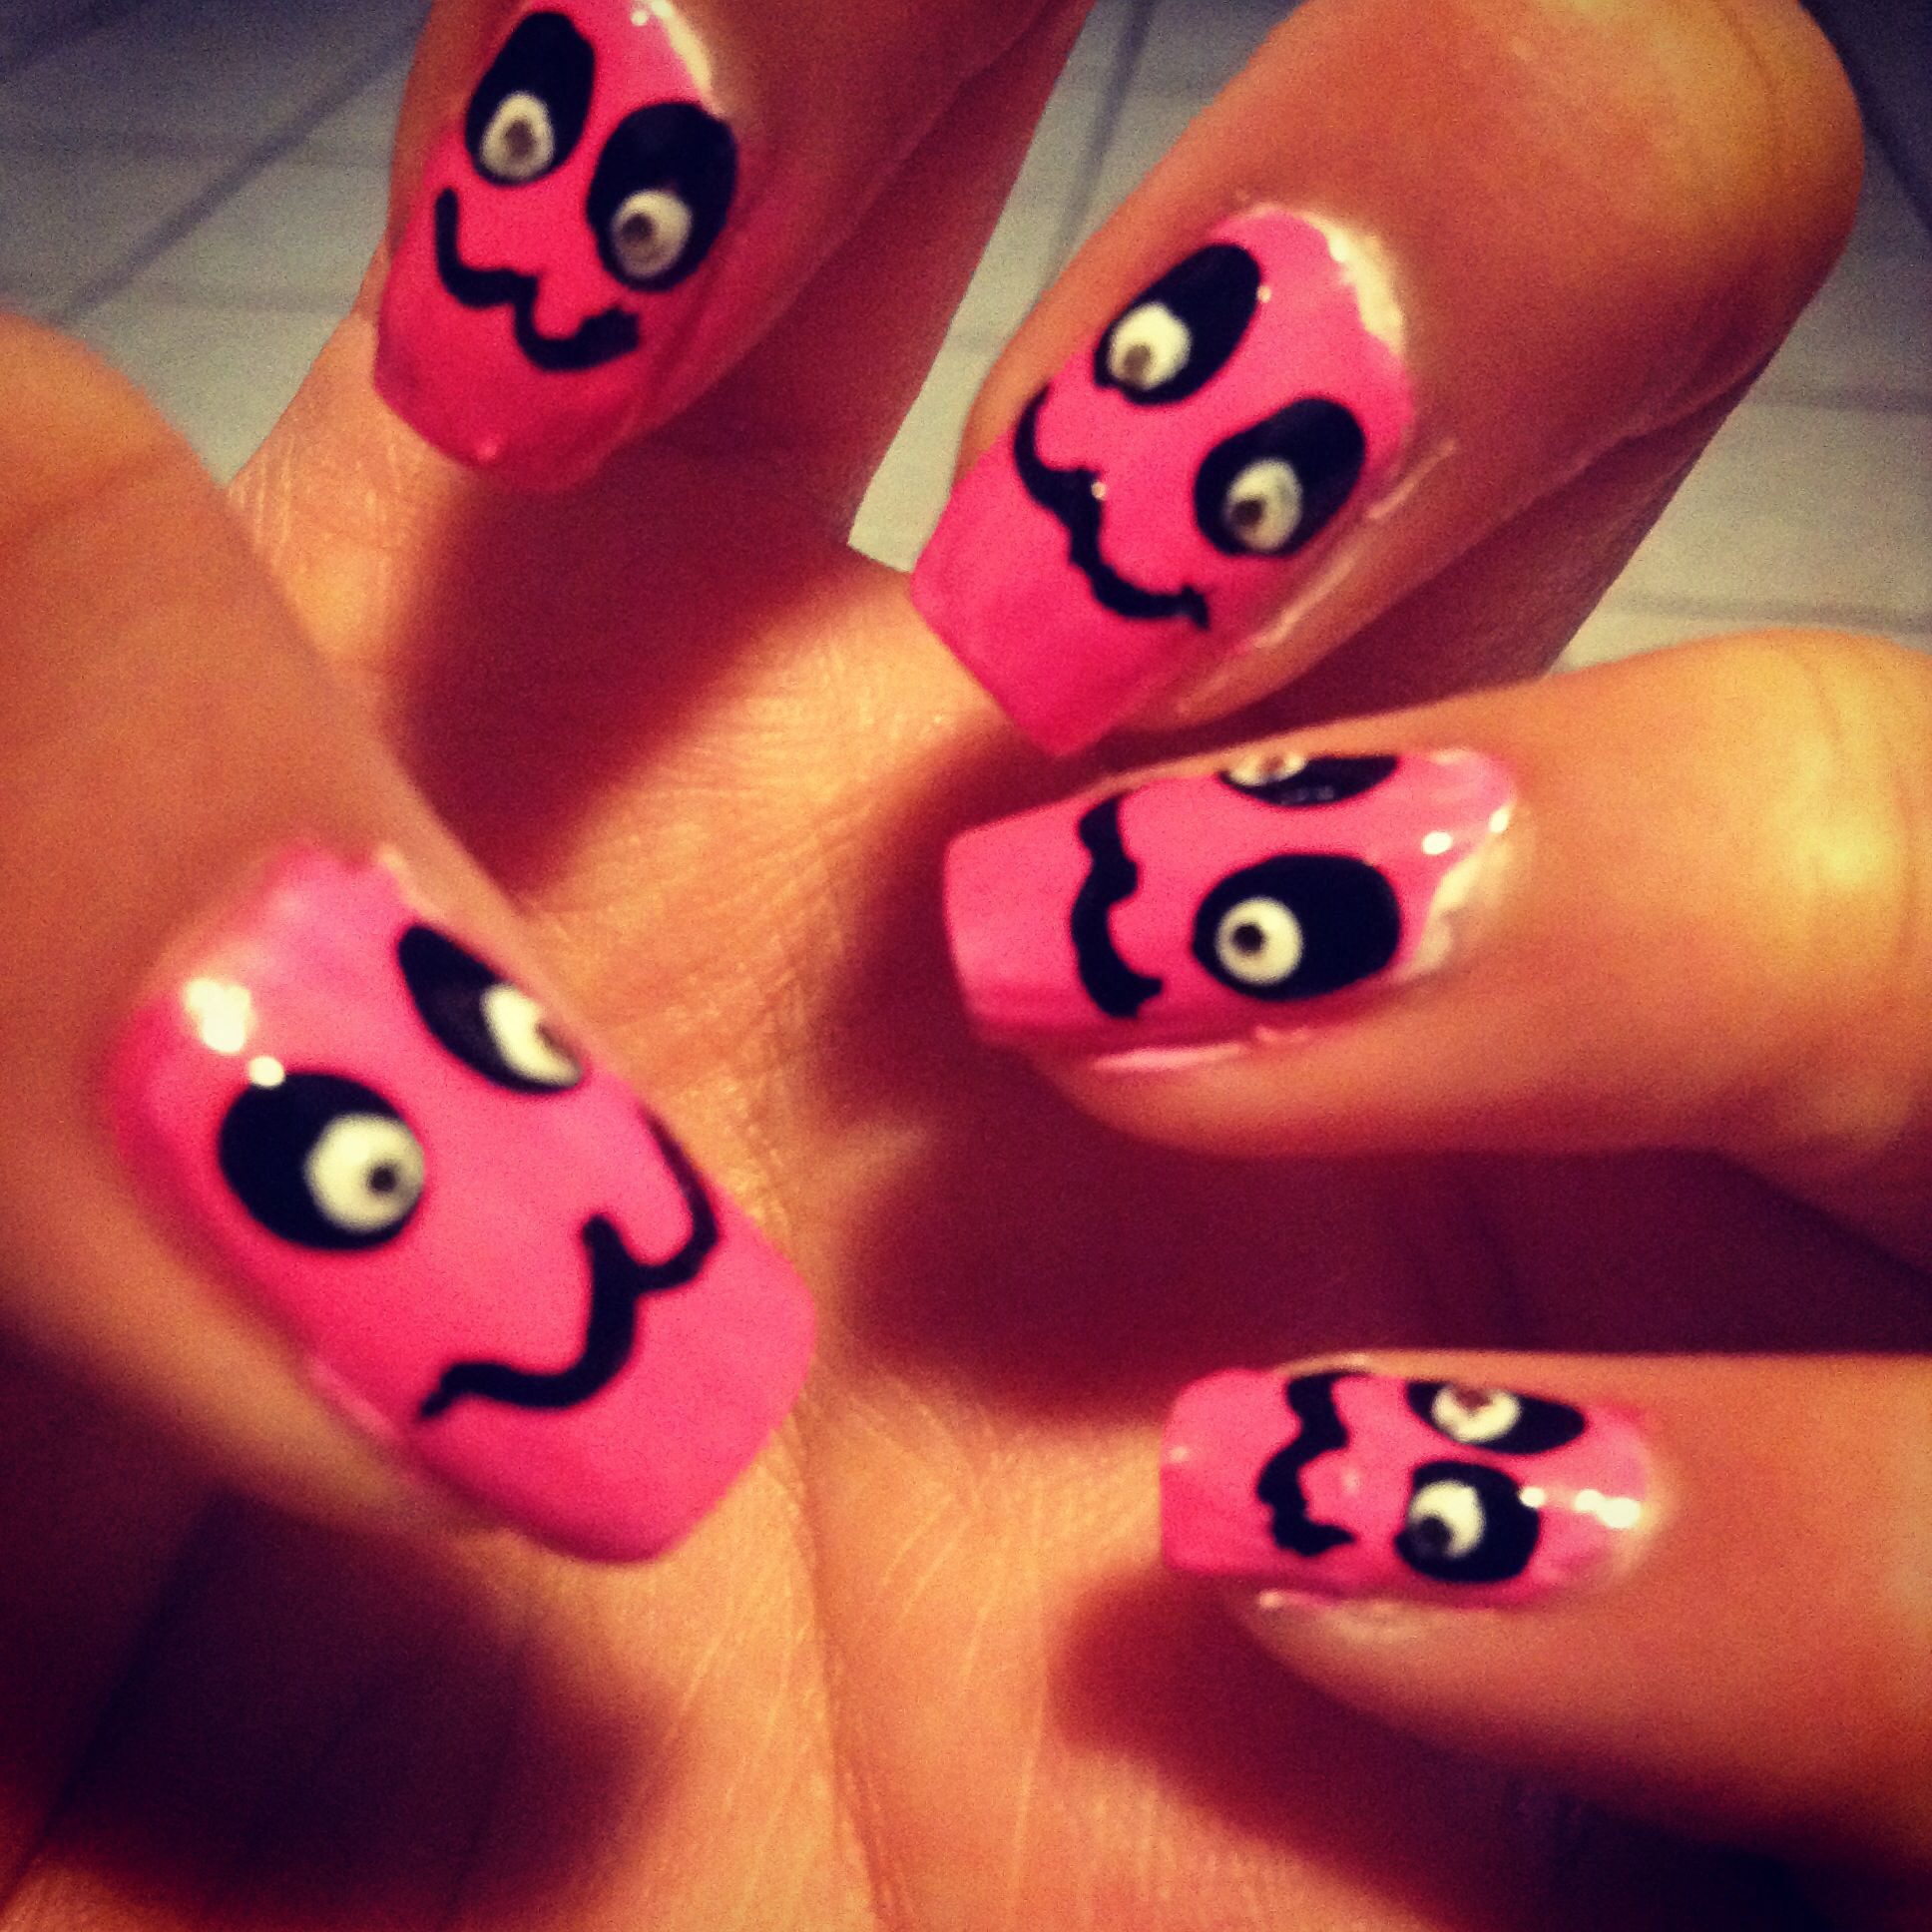 Nails I made #nails #naildesign #girly